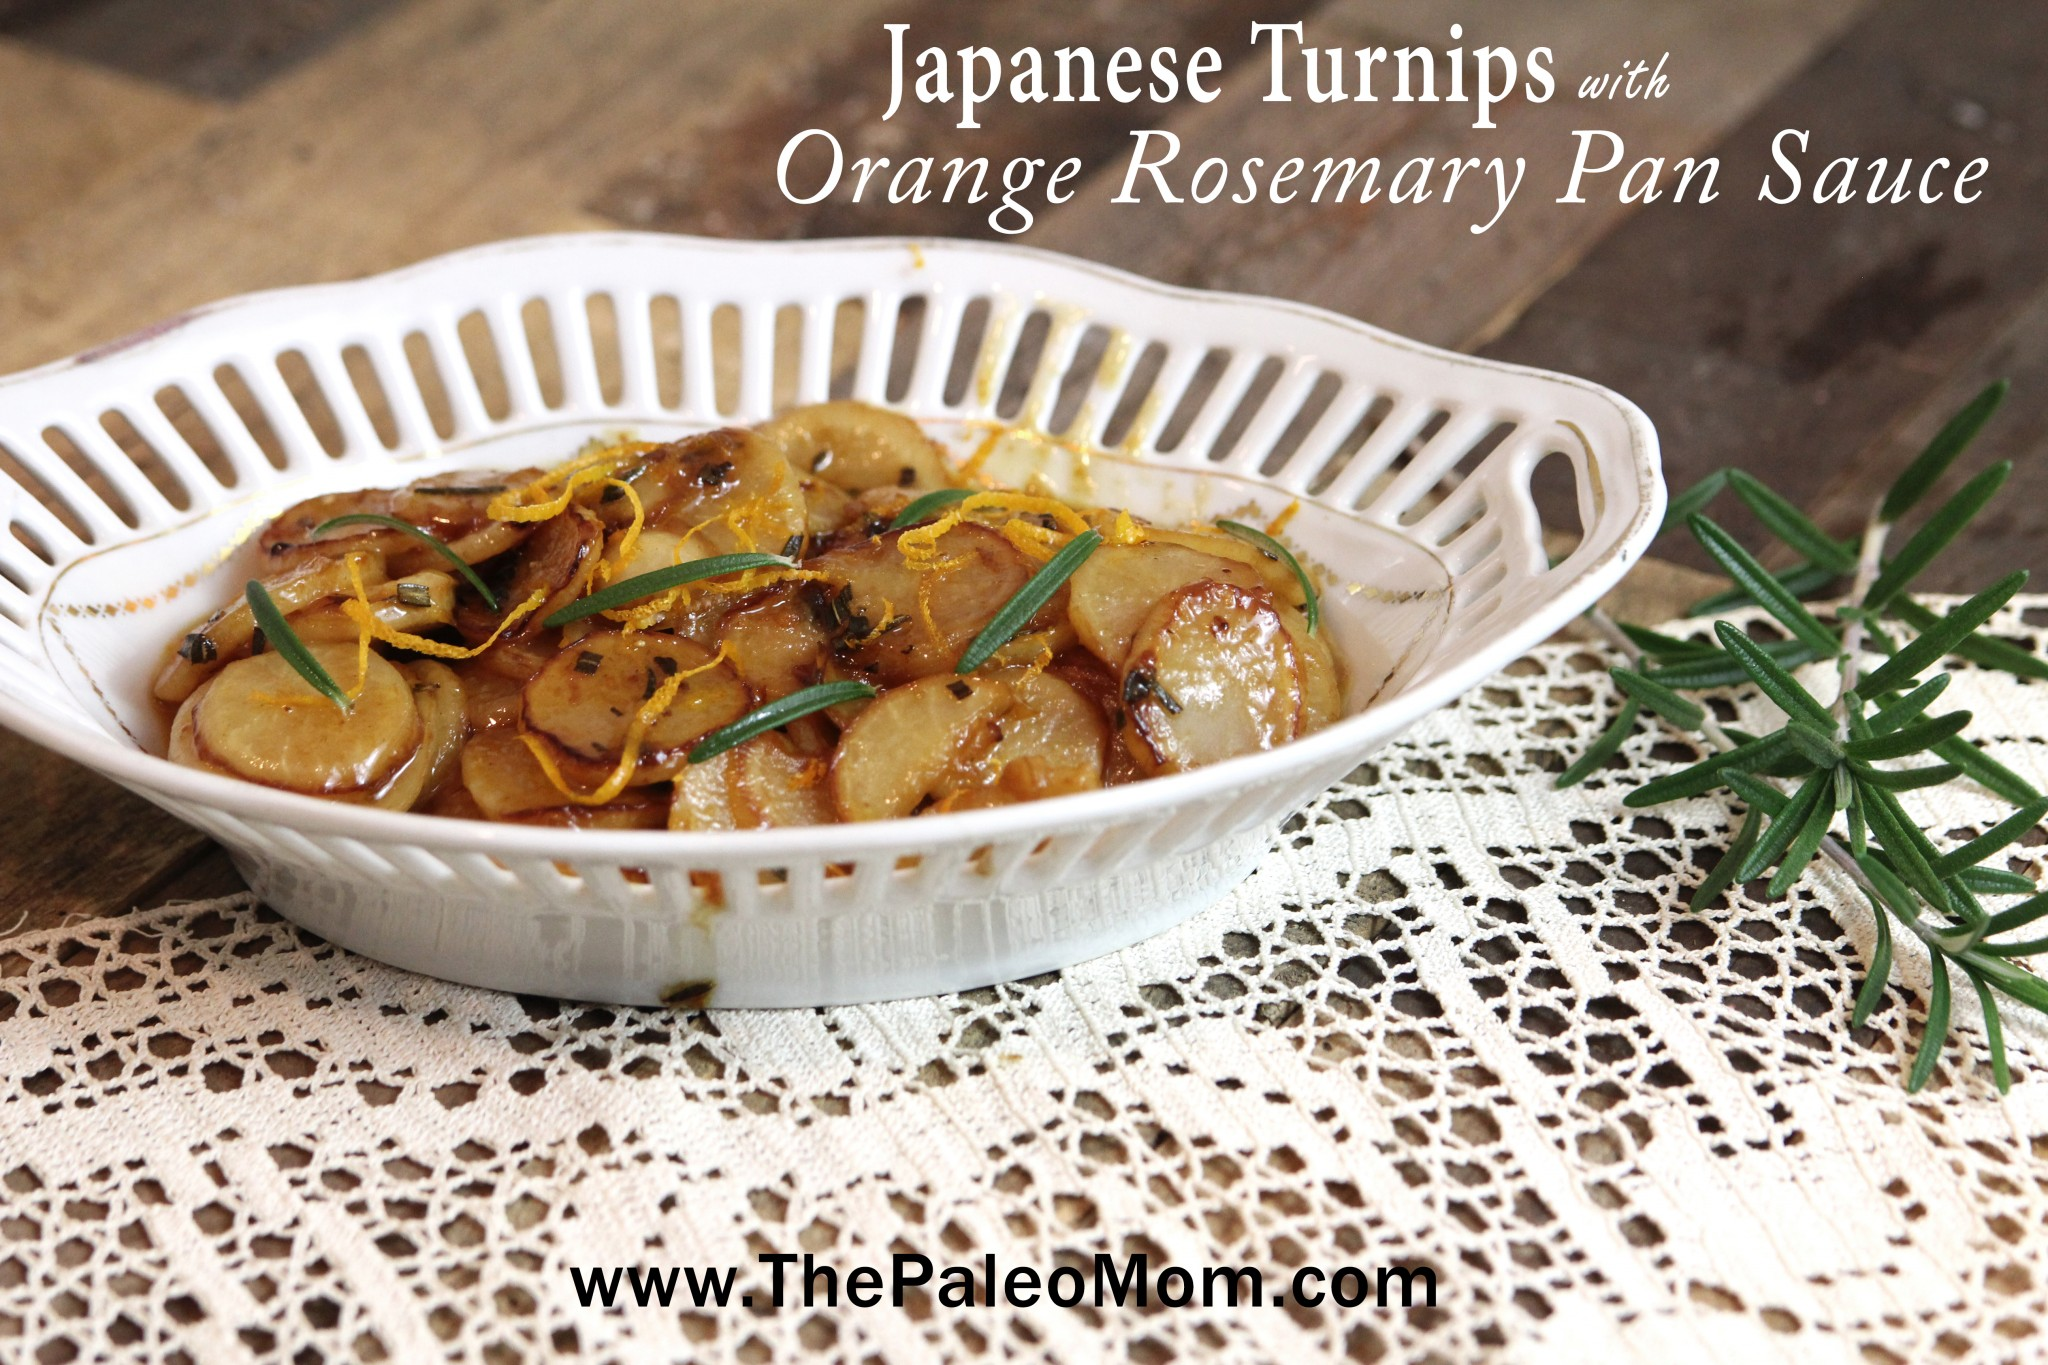 Japanese Turnips with Orange Rosemary Pan Sauce